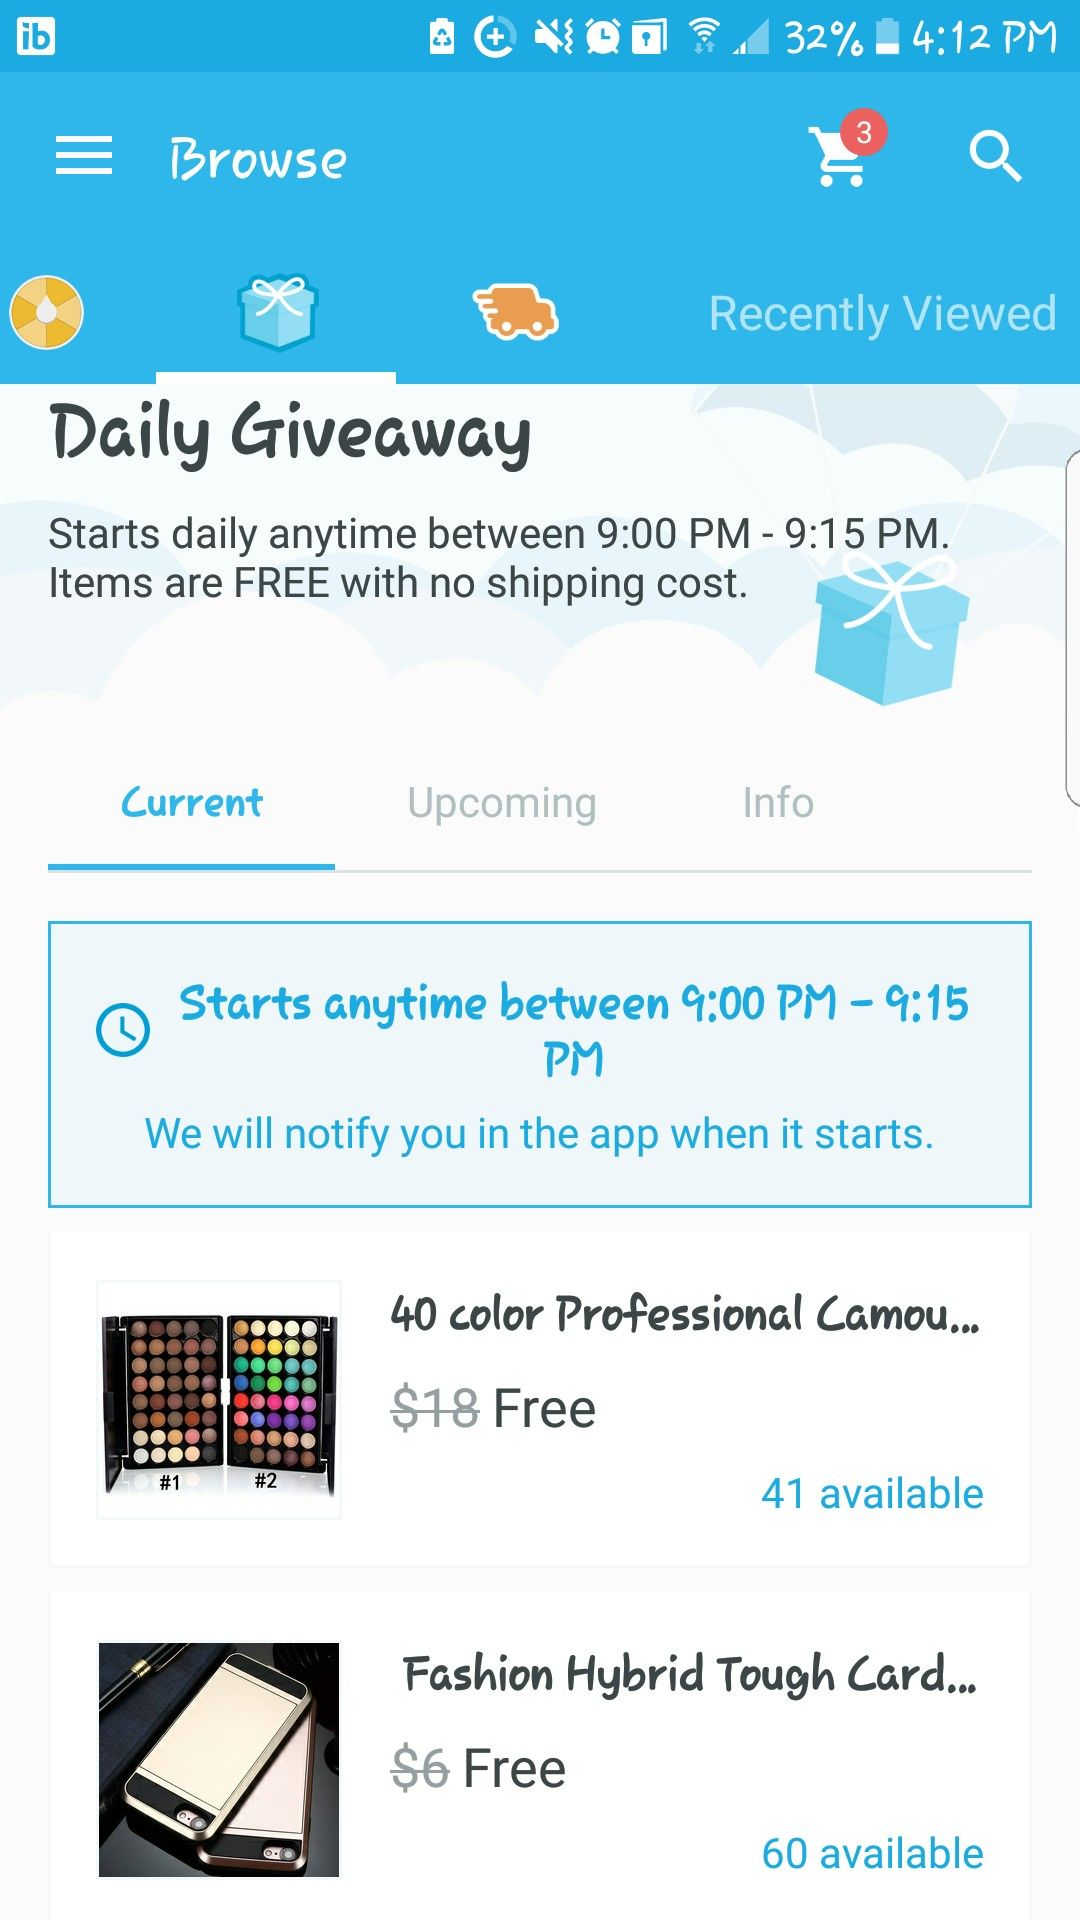 Get 50 Off With Promo Code Fyzxdgn Wish Has Many Discounts Abd Free Giveaways I Ve Already Won Once Free Giveaway Promo Codes Coding